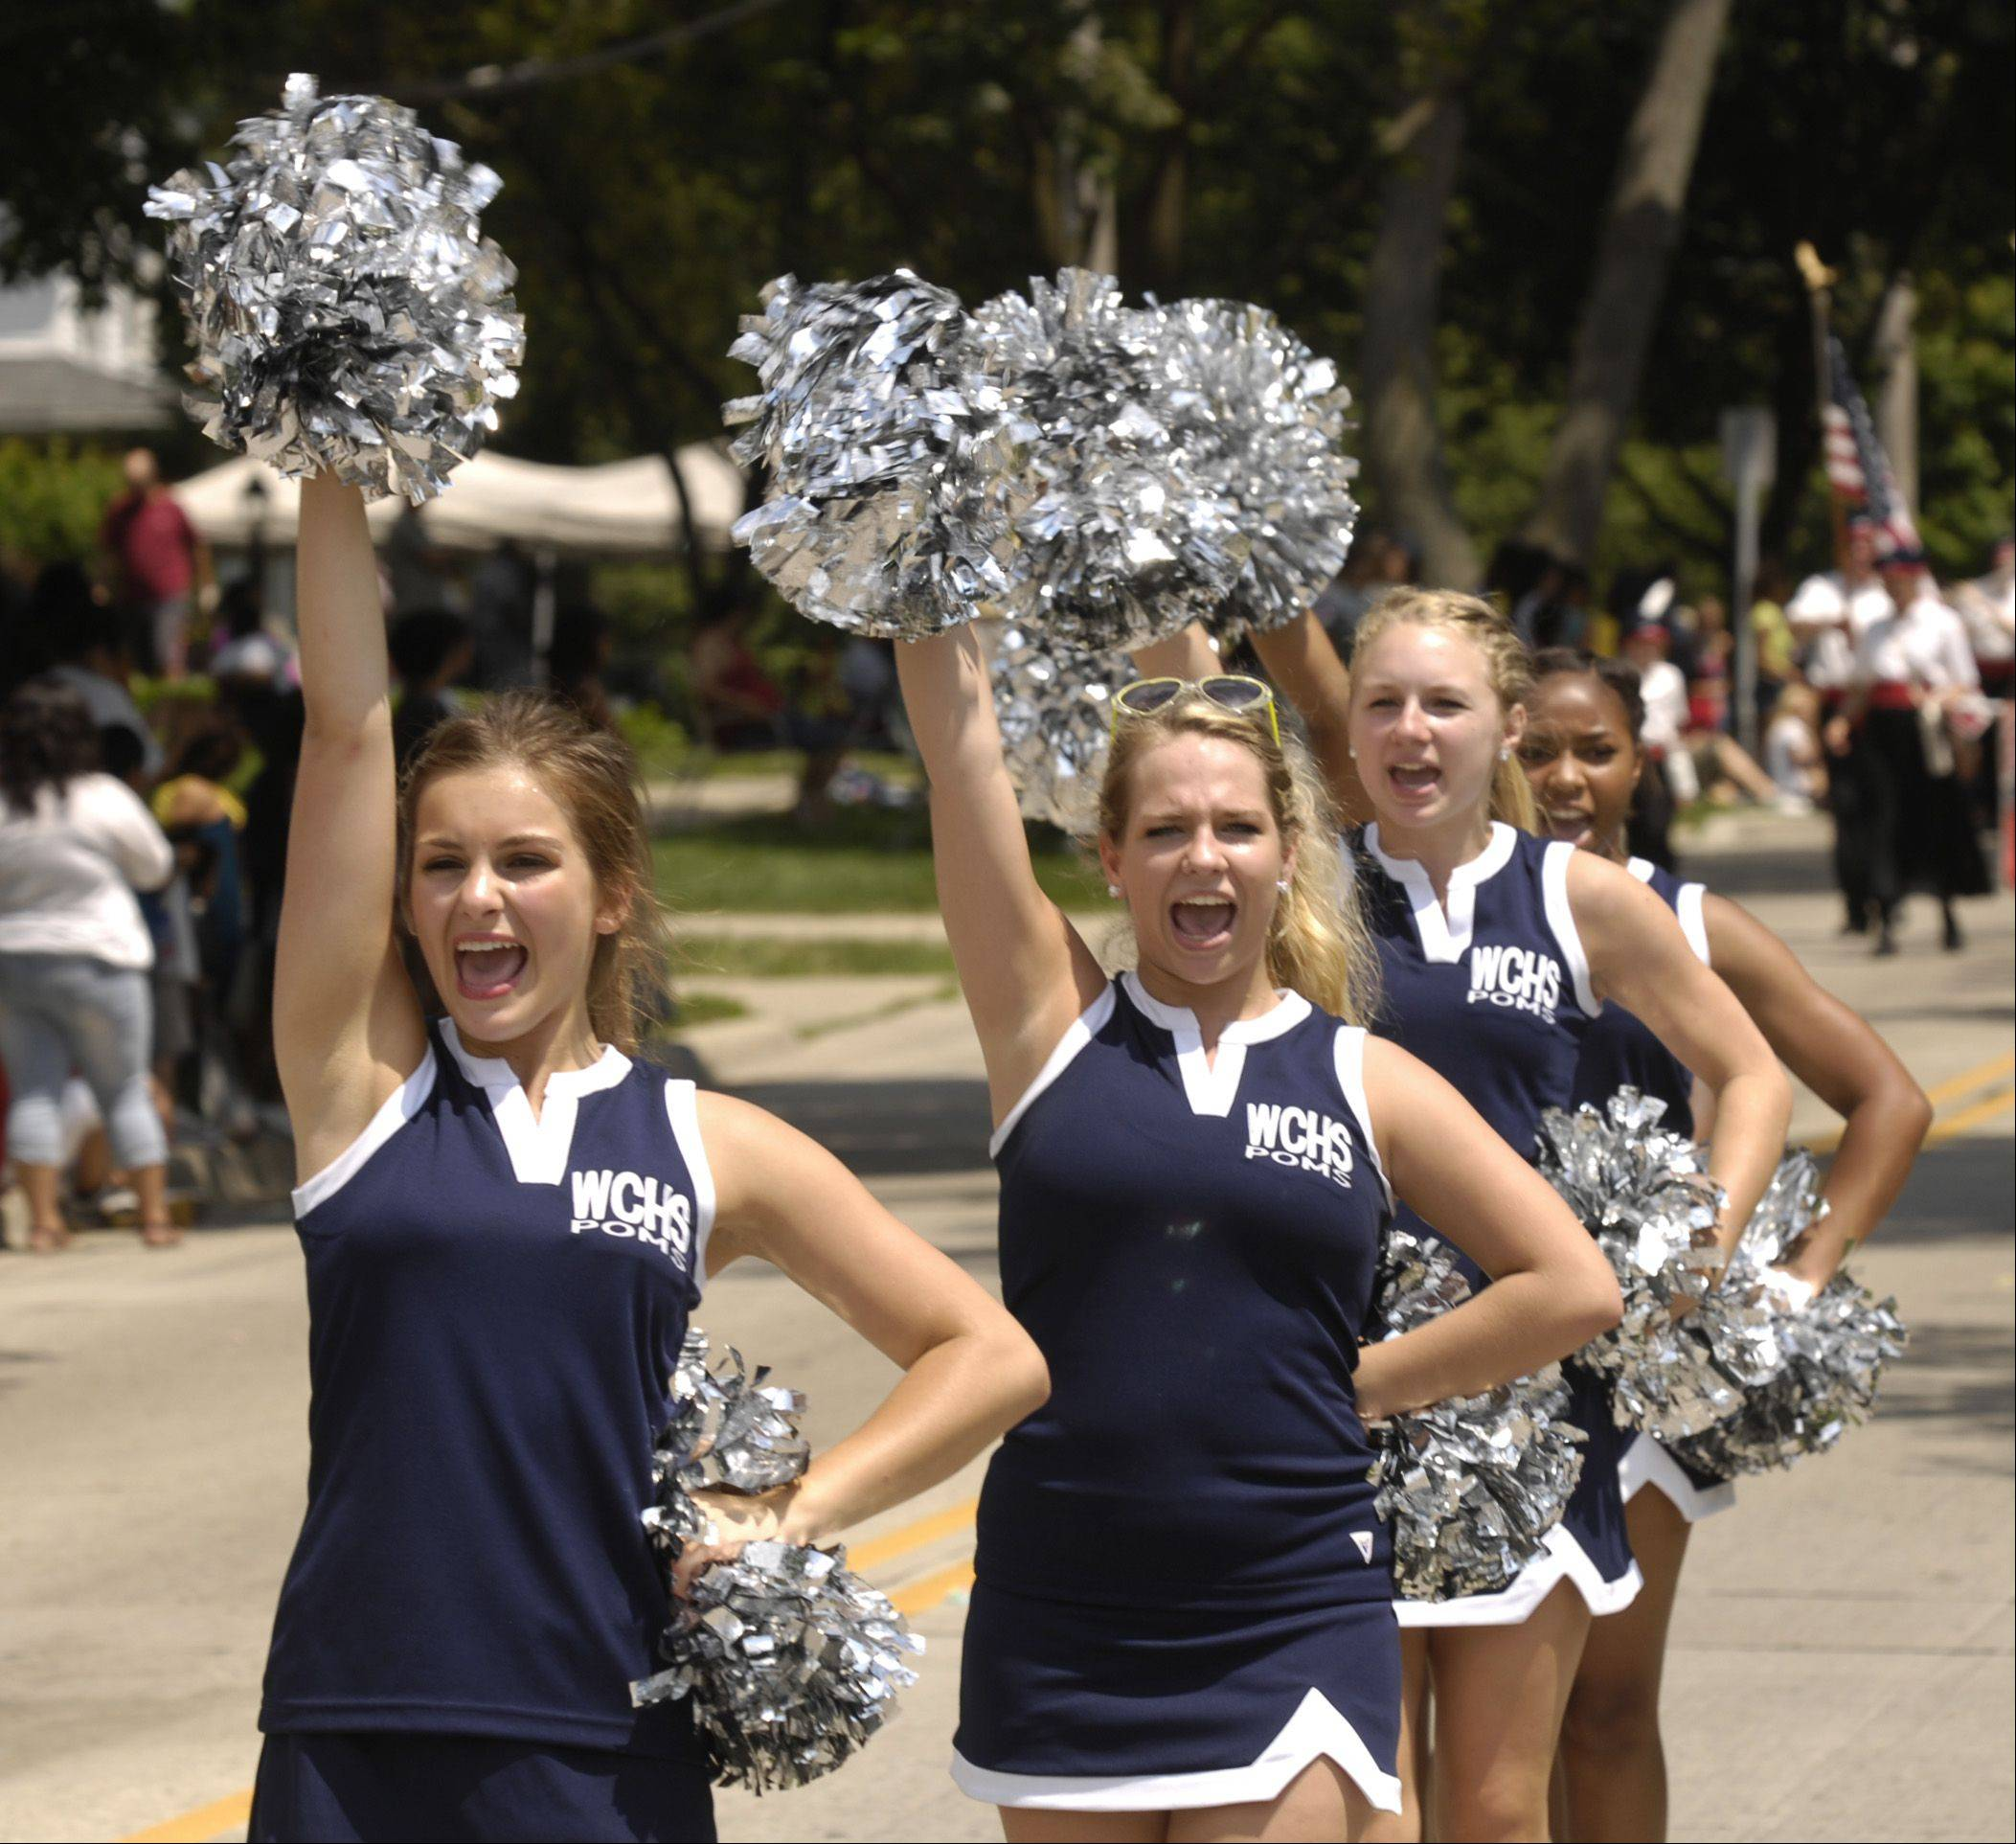 The West Chicago High School Poms march in the West Chicago Railroad days parade, Sunday.